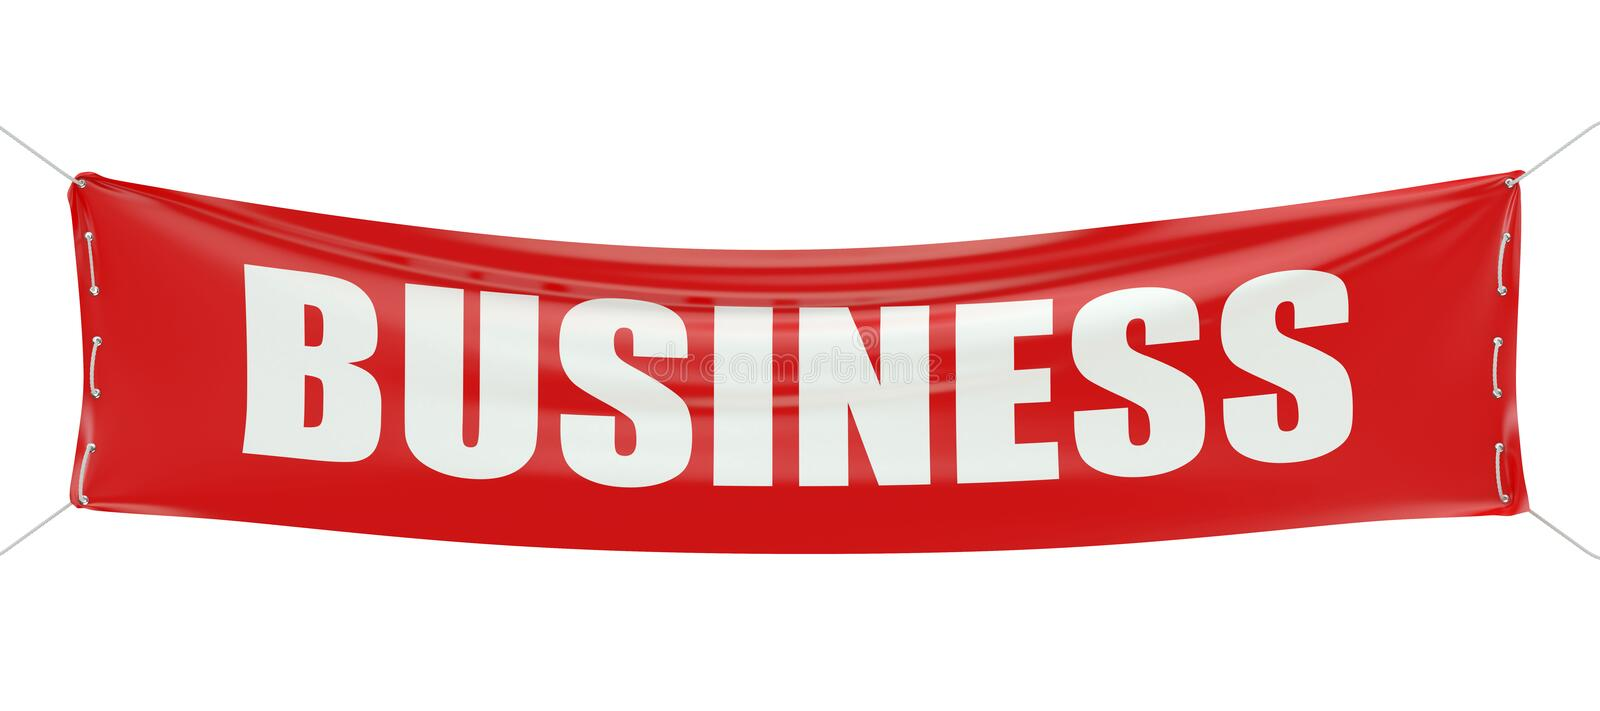 Business concept on the red banner 3D royalty free illustration